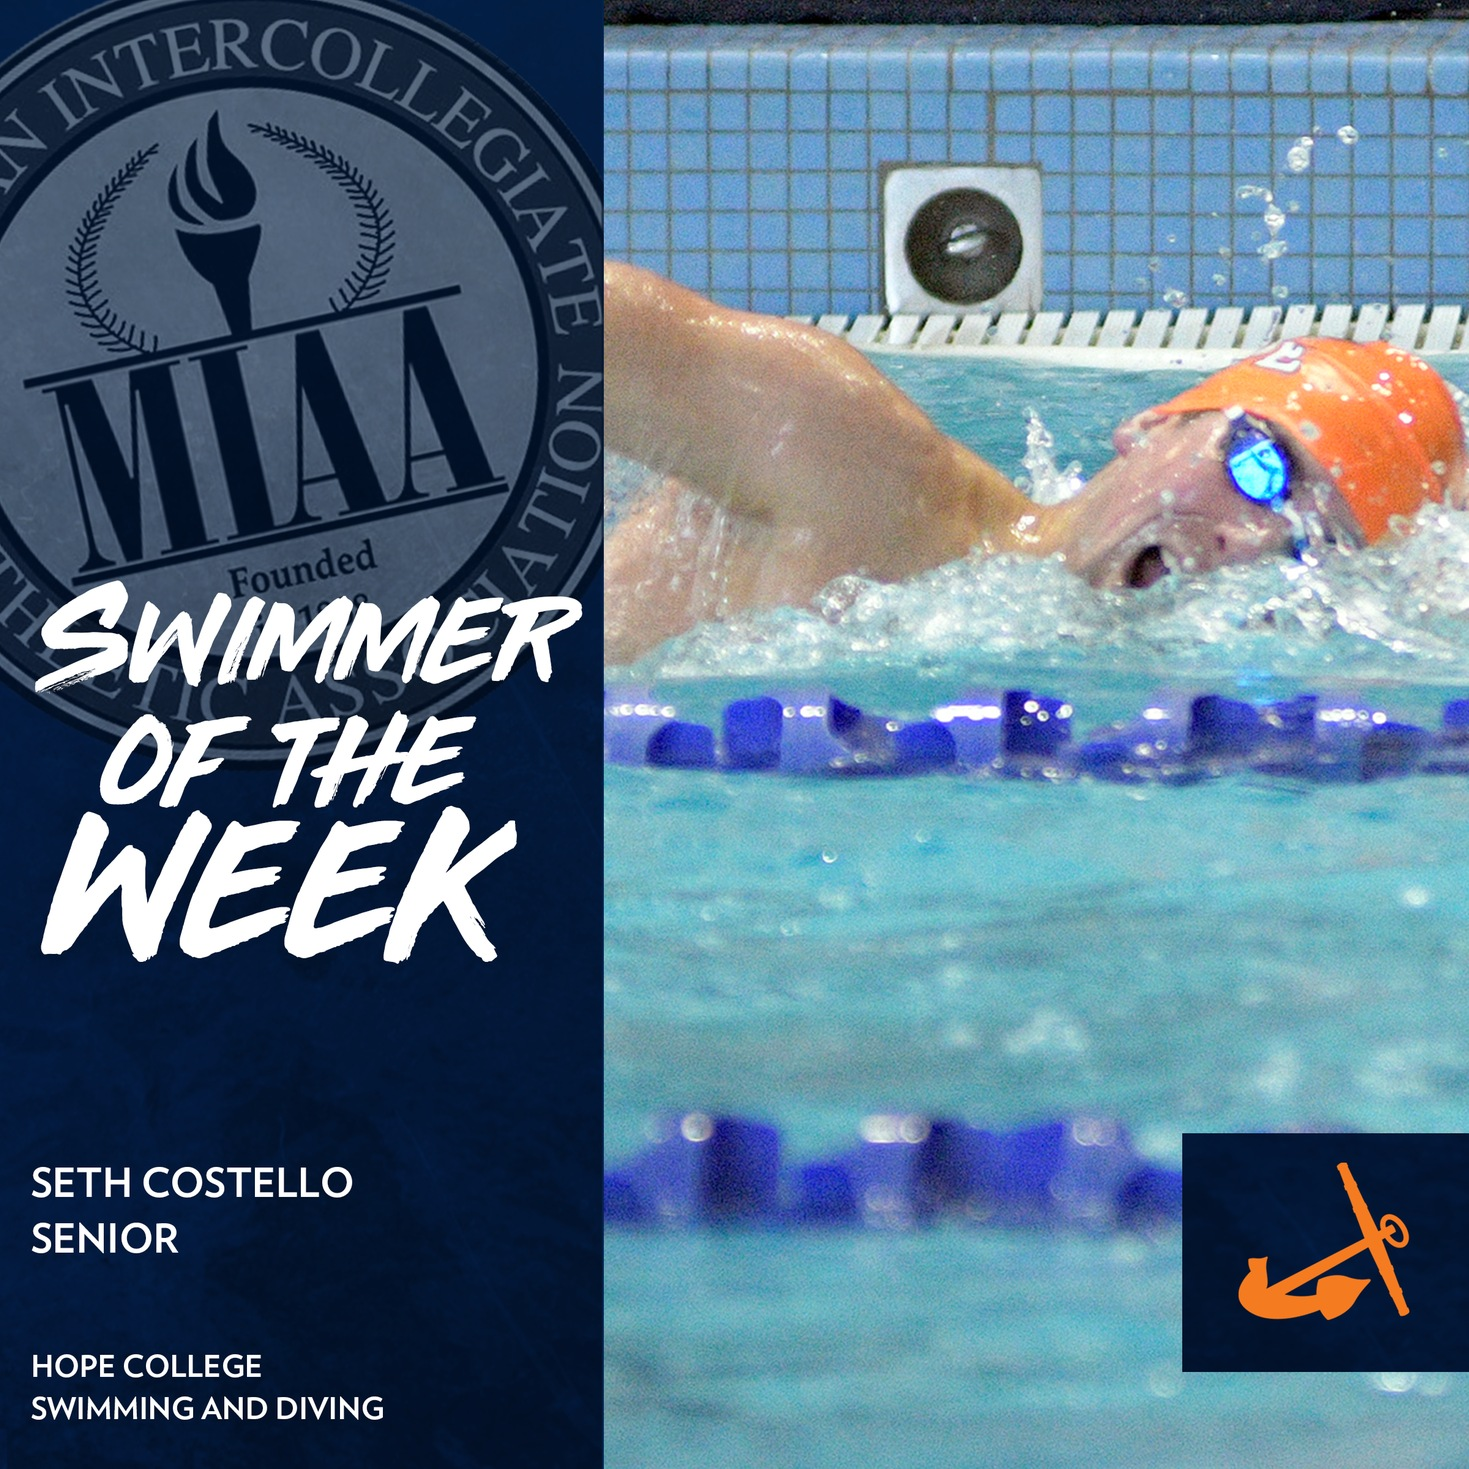 Seth Costello swims a freestyle event